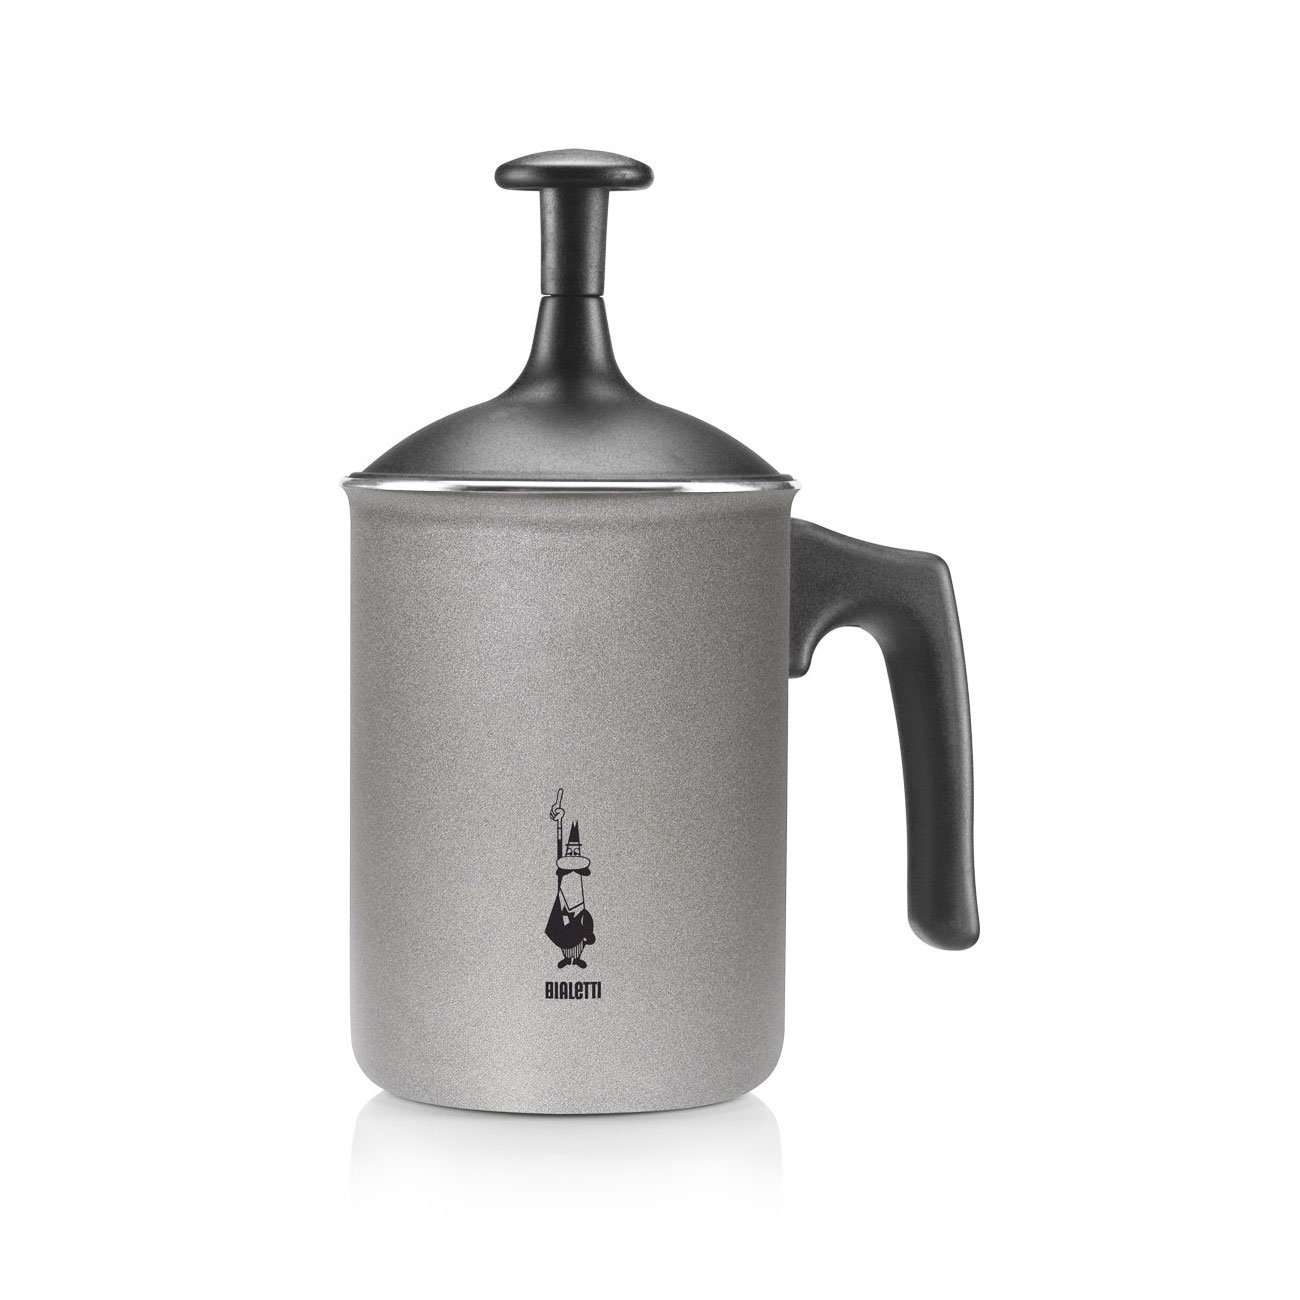 Bialetti Tuttocrema Frother